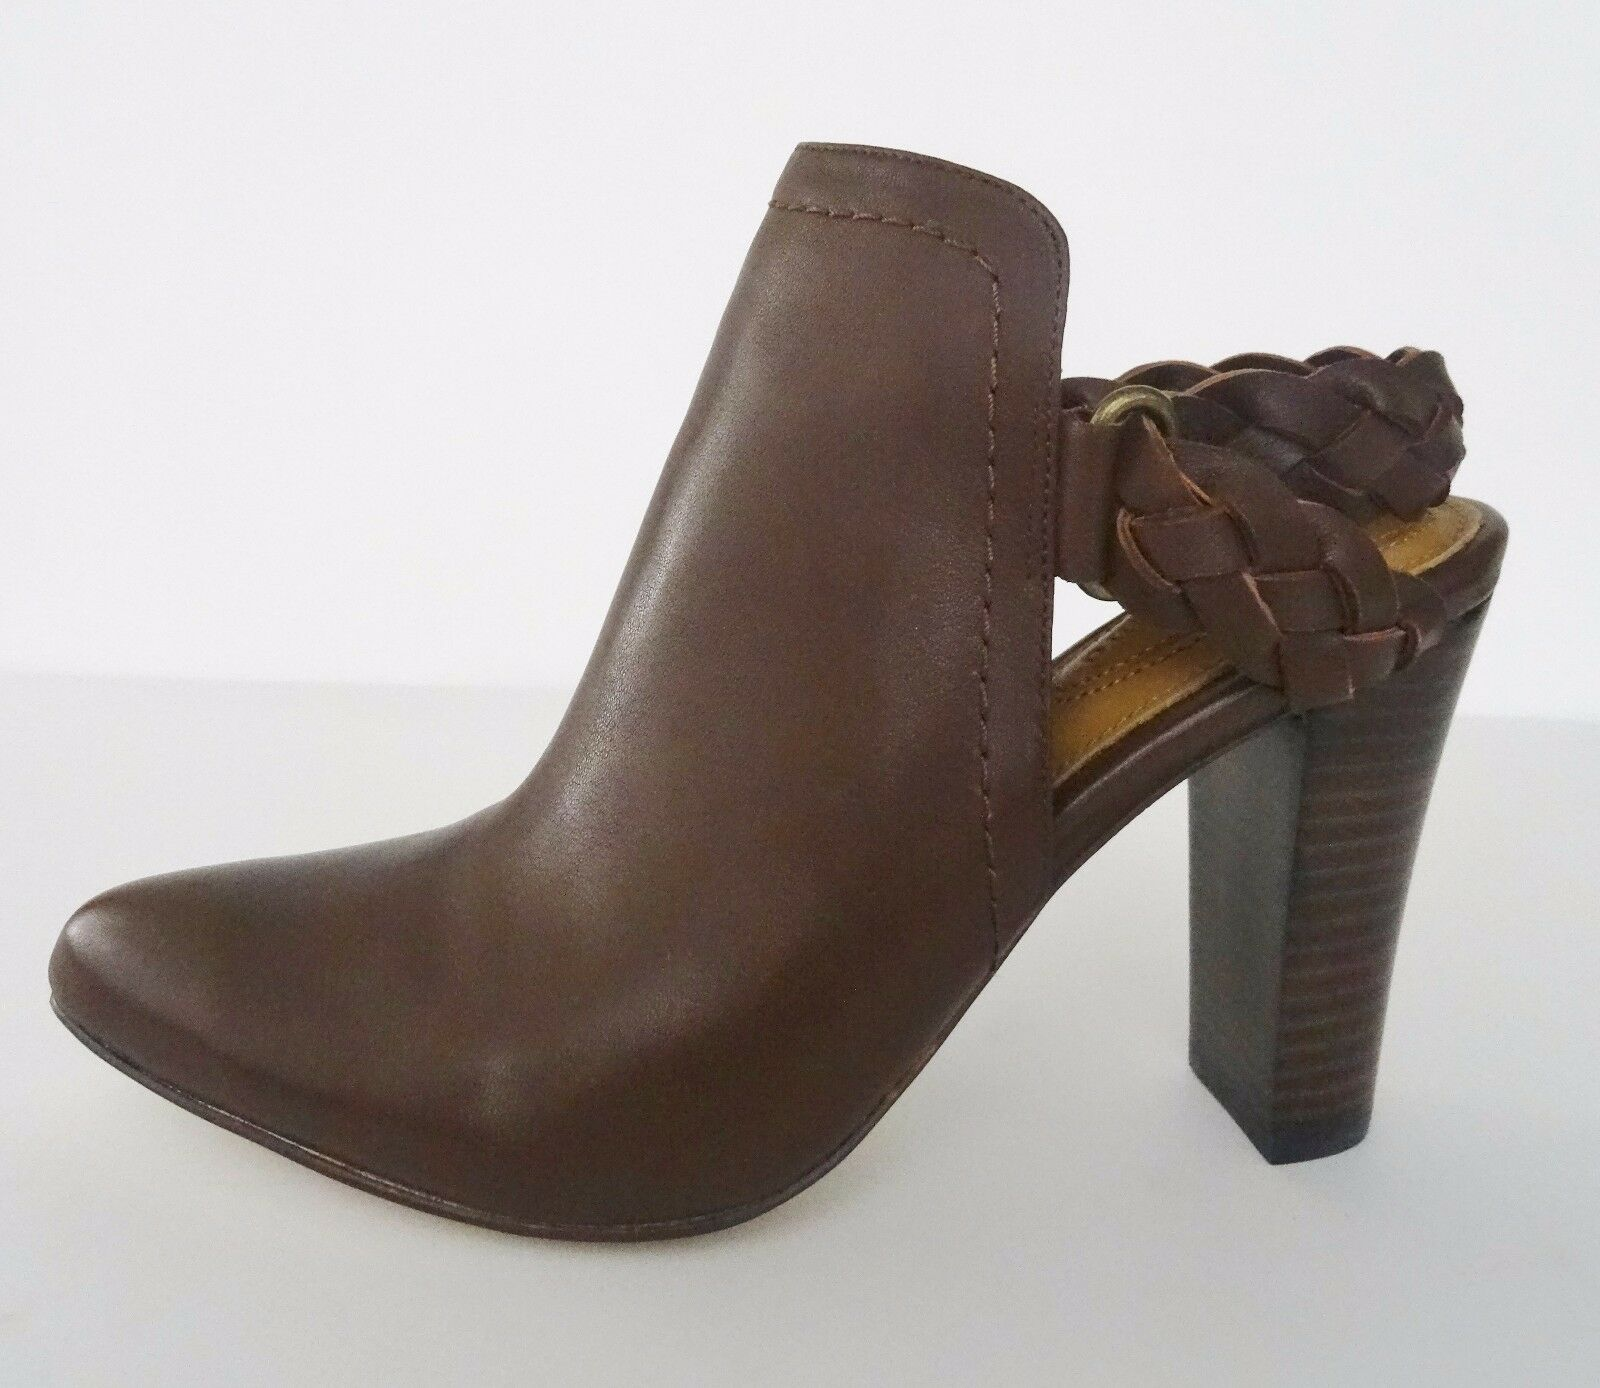 NIB Corso Como Williamsburg Braided Strap Bootie Heel  8.5 M Chestnut Brown 178